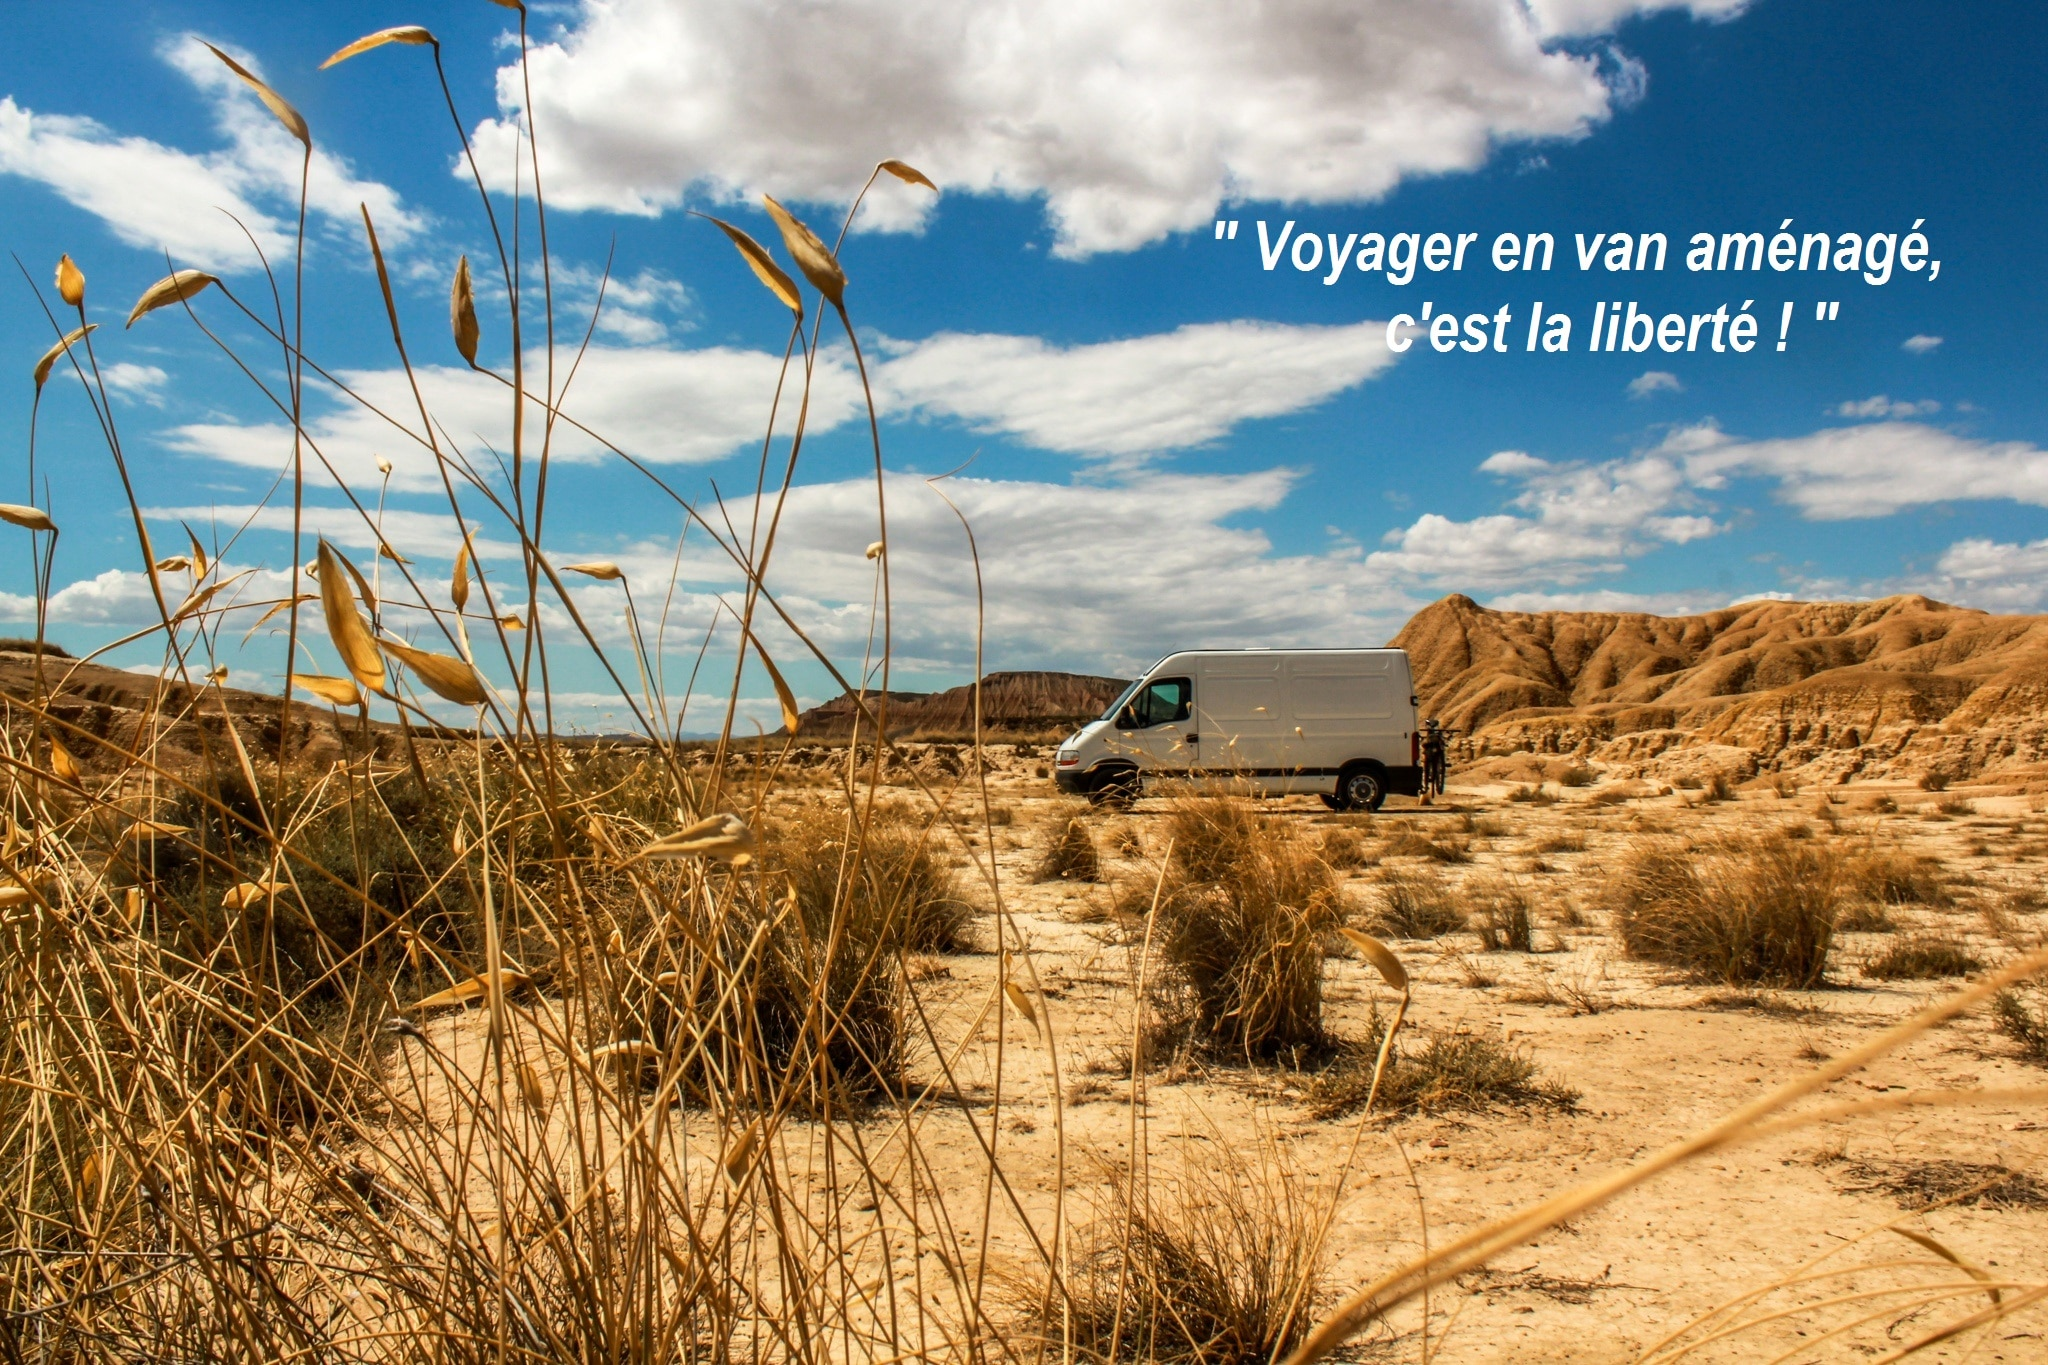 roadtrip en van amenage poimaventure